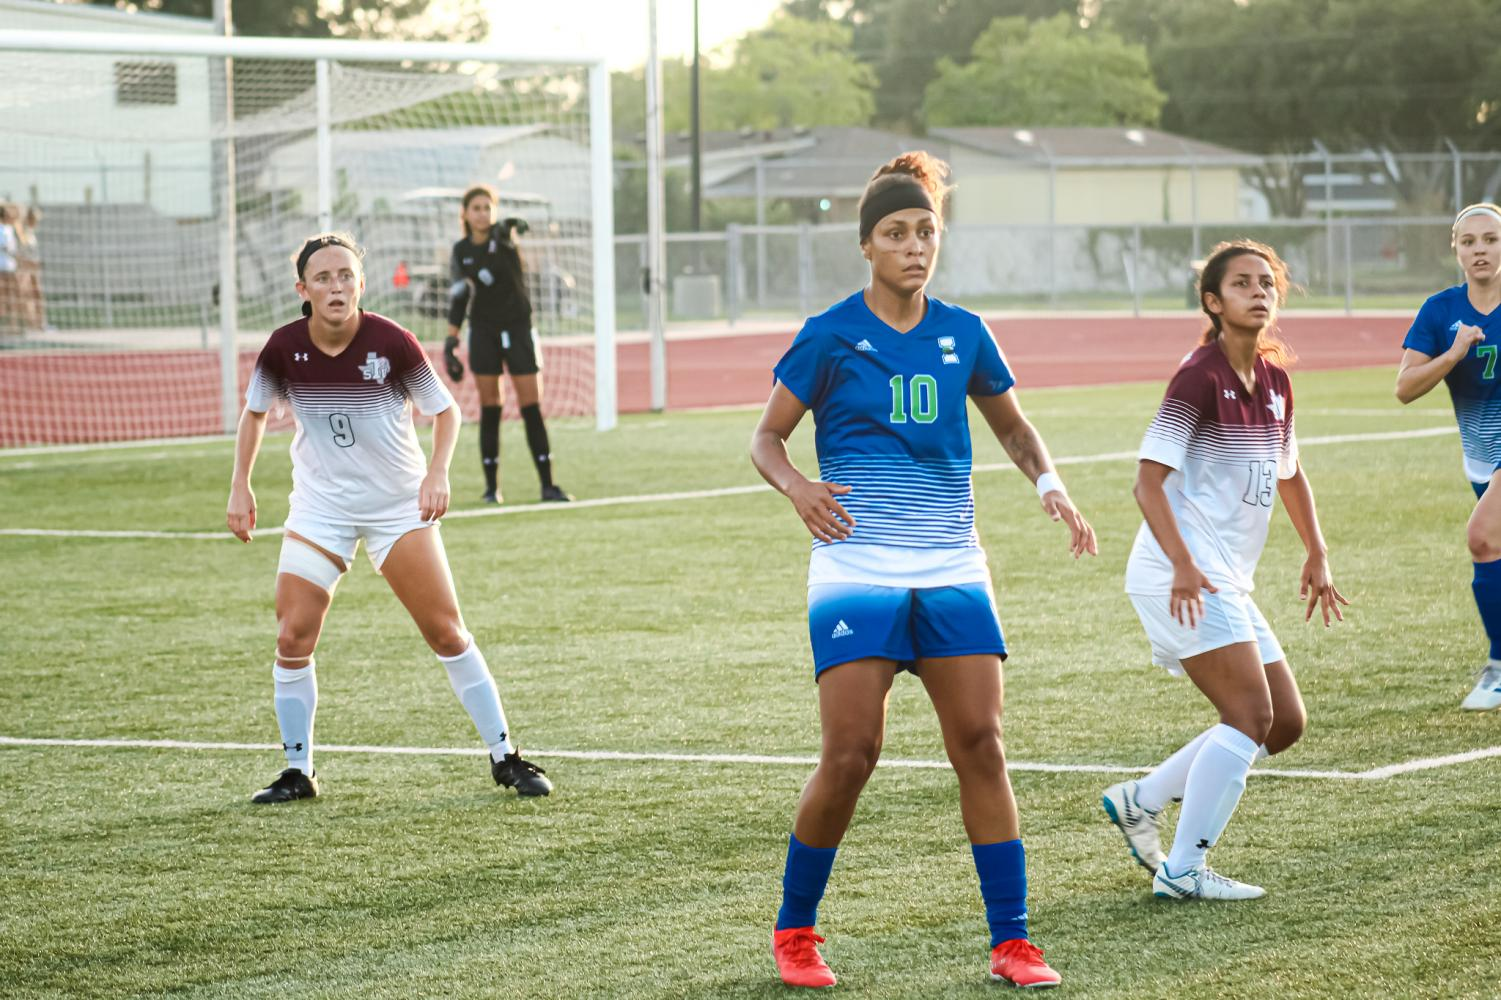 All photography courtesy of Kedran Wade/ISLAND WAVES -Larissa Fagundes scored the first goal of the game in less than seven minutes.